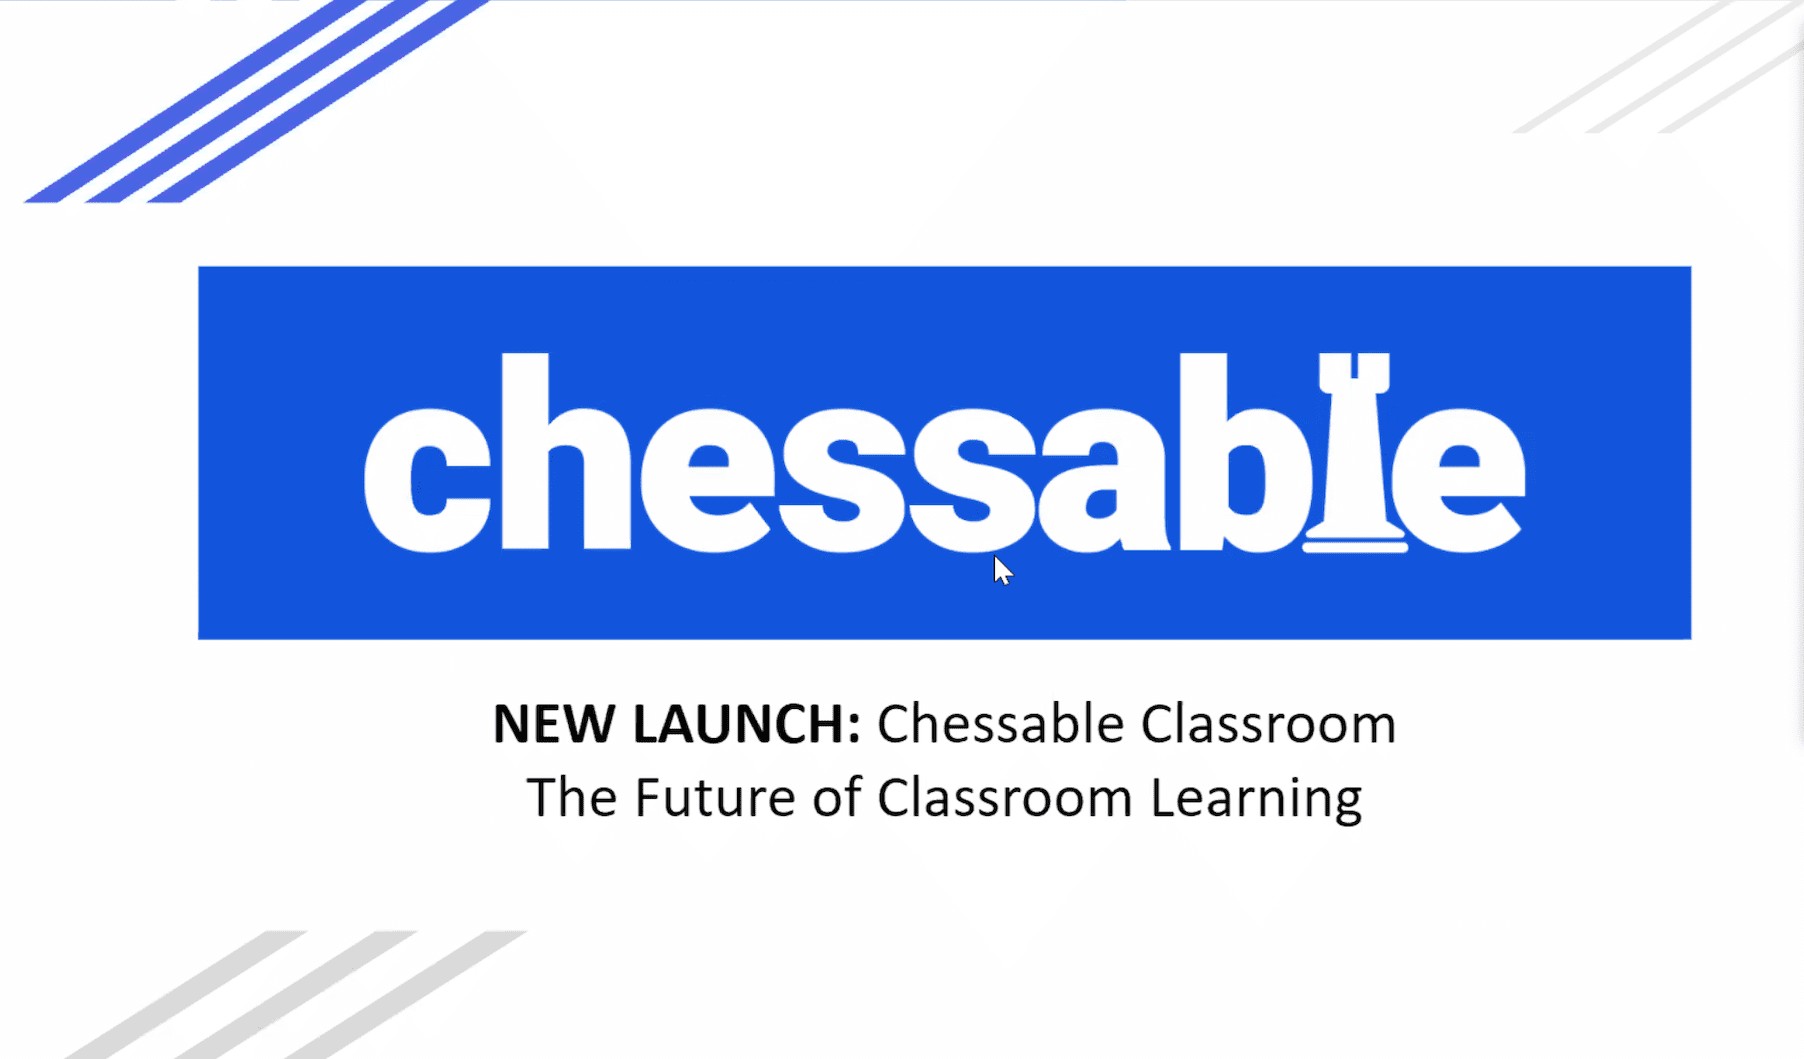 Chessable at ChessTech2020